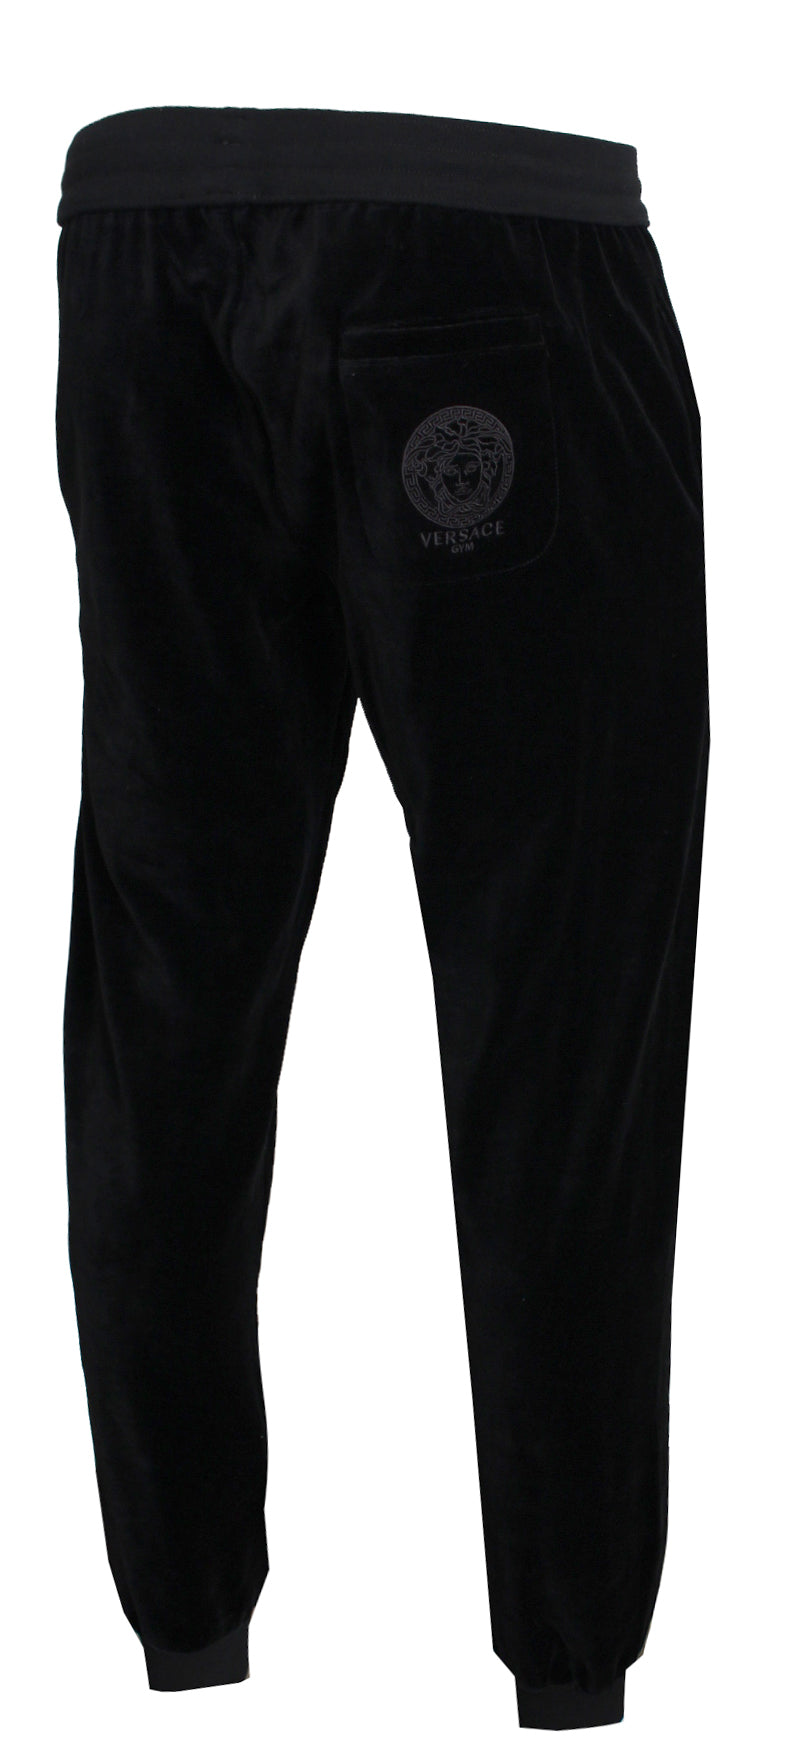 Versace Gym Trousers|Black